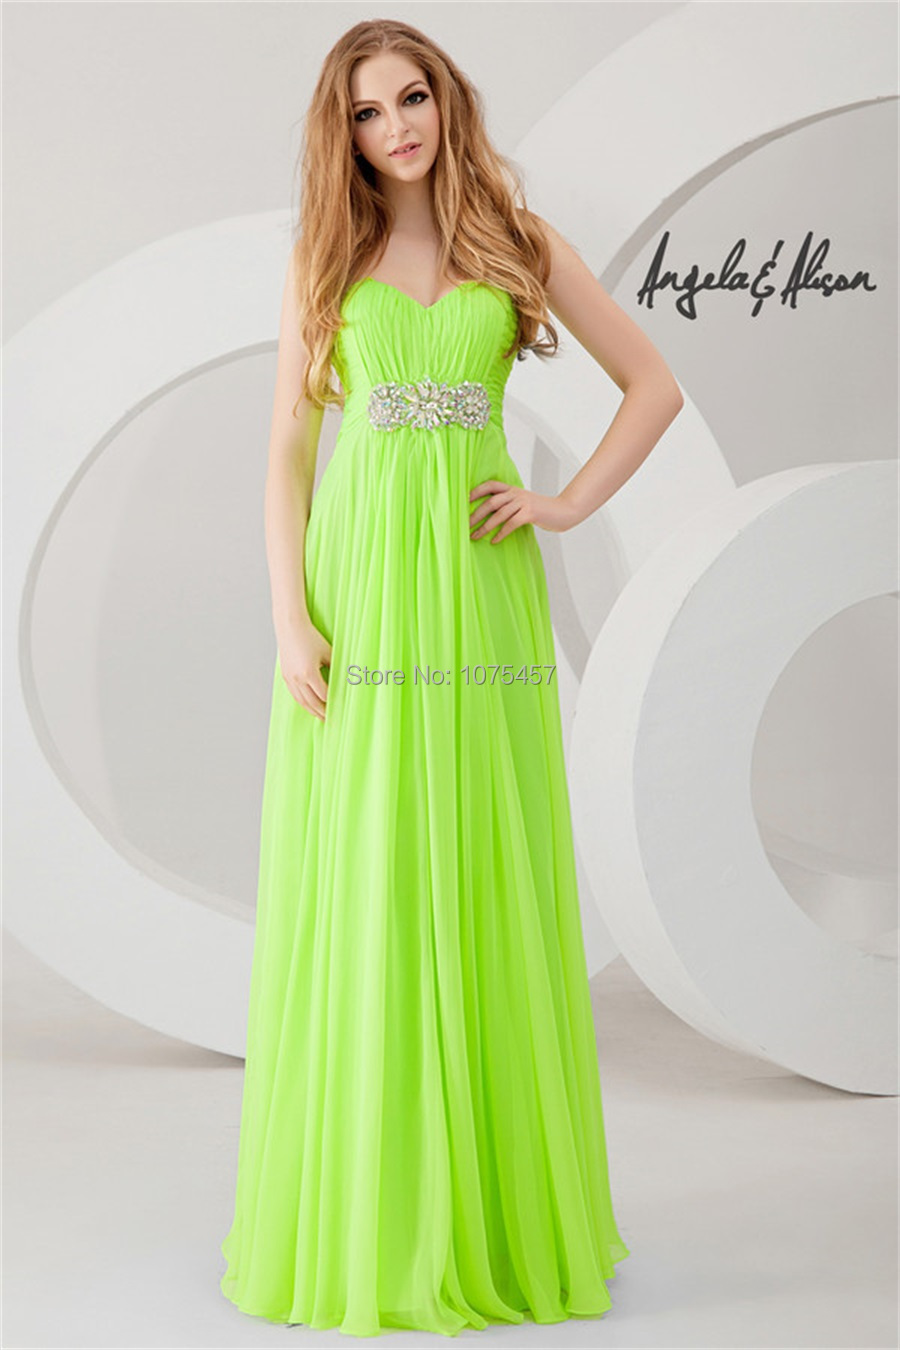 Best Neon Green Prom Dresses Contemporary Awesome Wedding - Best Neon Green Prom Dresses Contemporary - Awesome Wedding